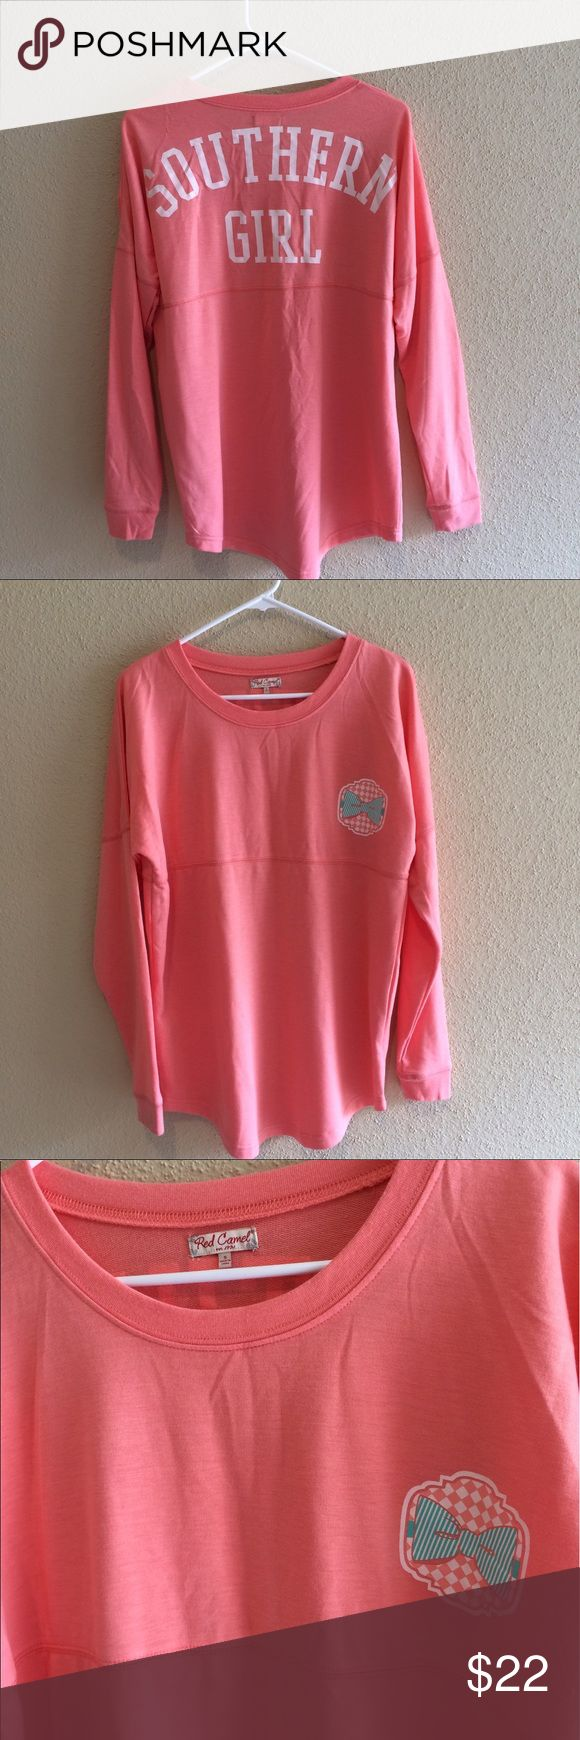 NWOT Southern Girl Sweeper Top Description: Long sleeve Southern Girl sweeper top. Super comfy and soft. Color: Coral Glow Size: Small retail: $36 Brand: Red Camel Condition: NWOT. New without tags. Never worn, never washed. Just cut off tags. Red Camel Tops Tees - Long Sleeve